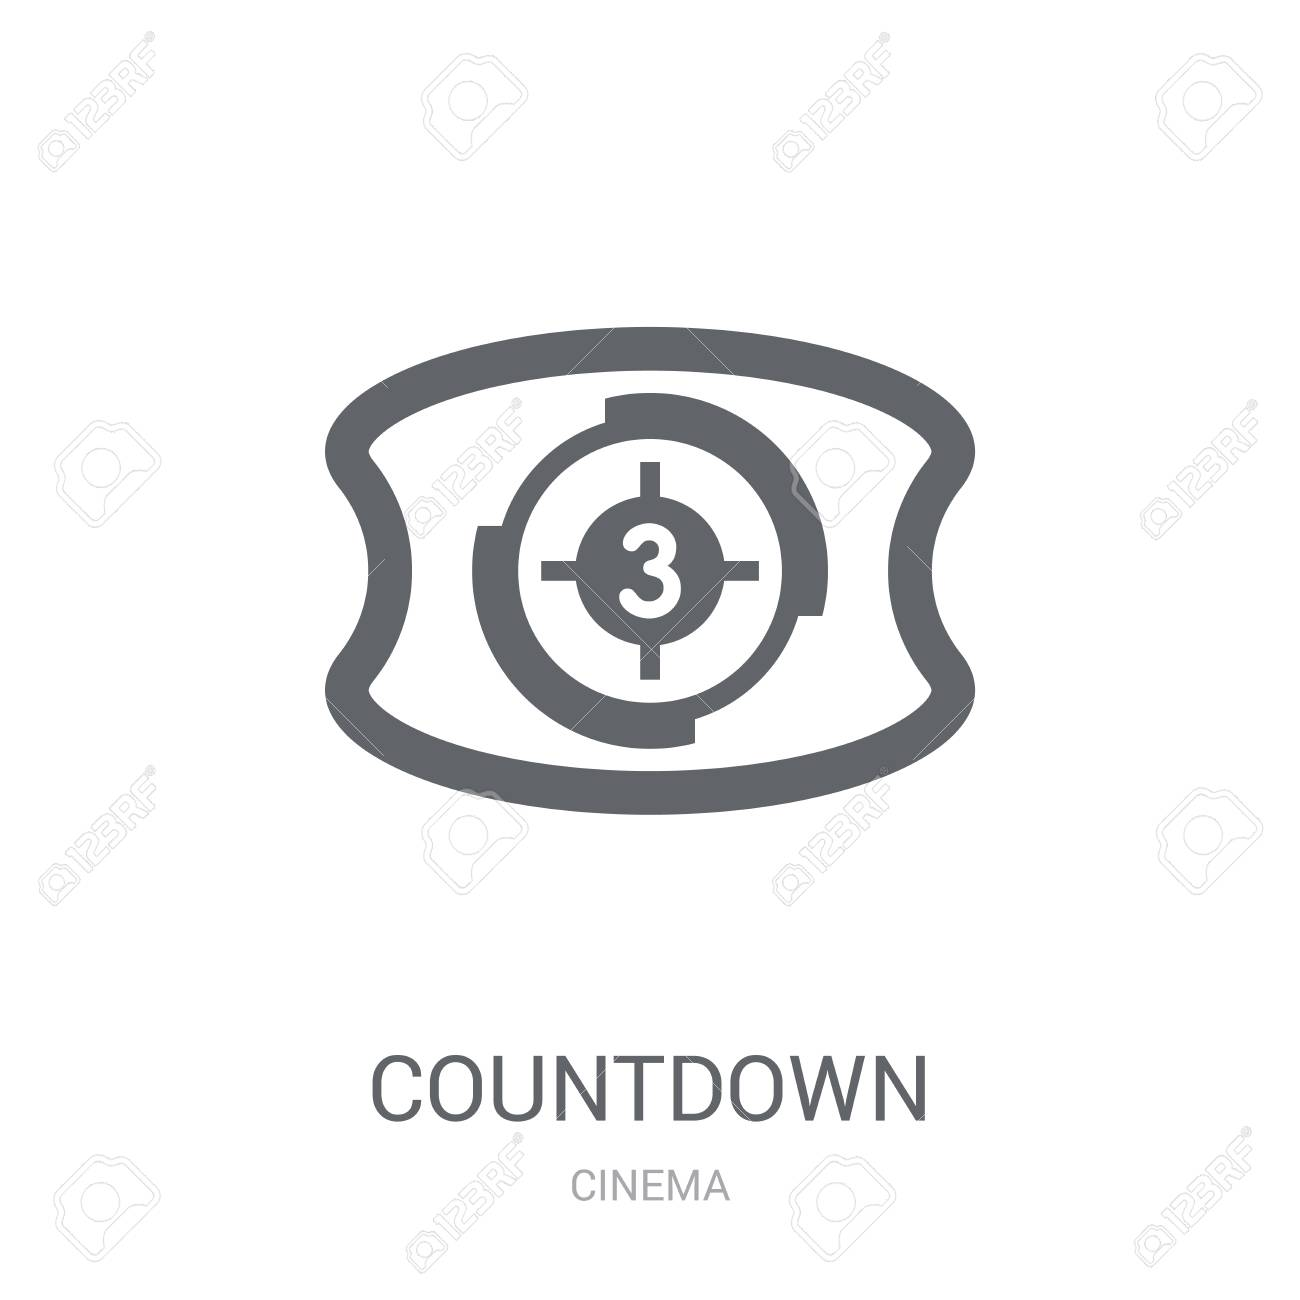 Countdown icon  Trendy Countdown logo concept on white background